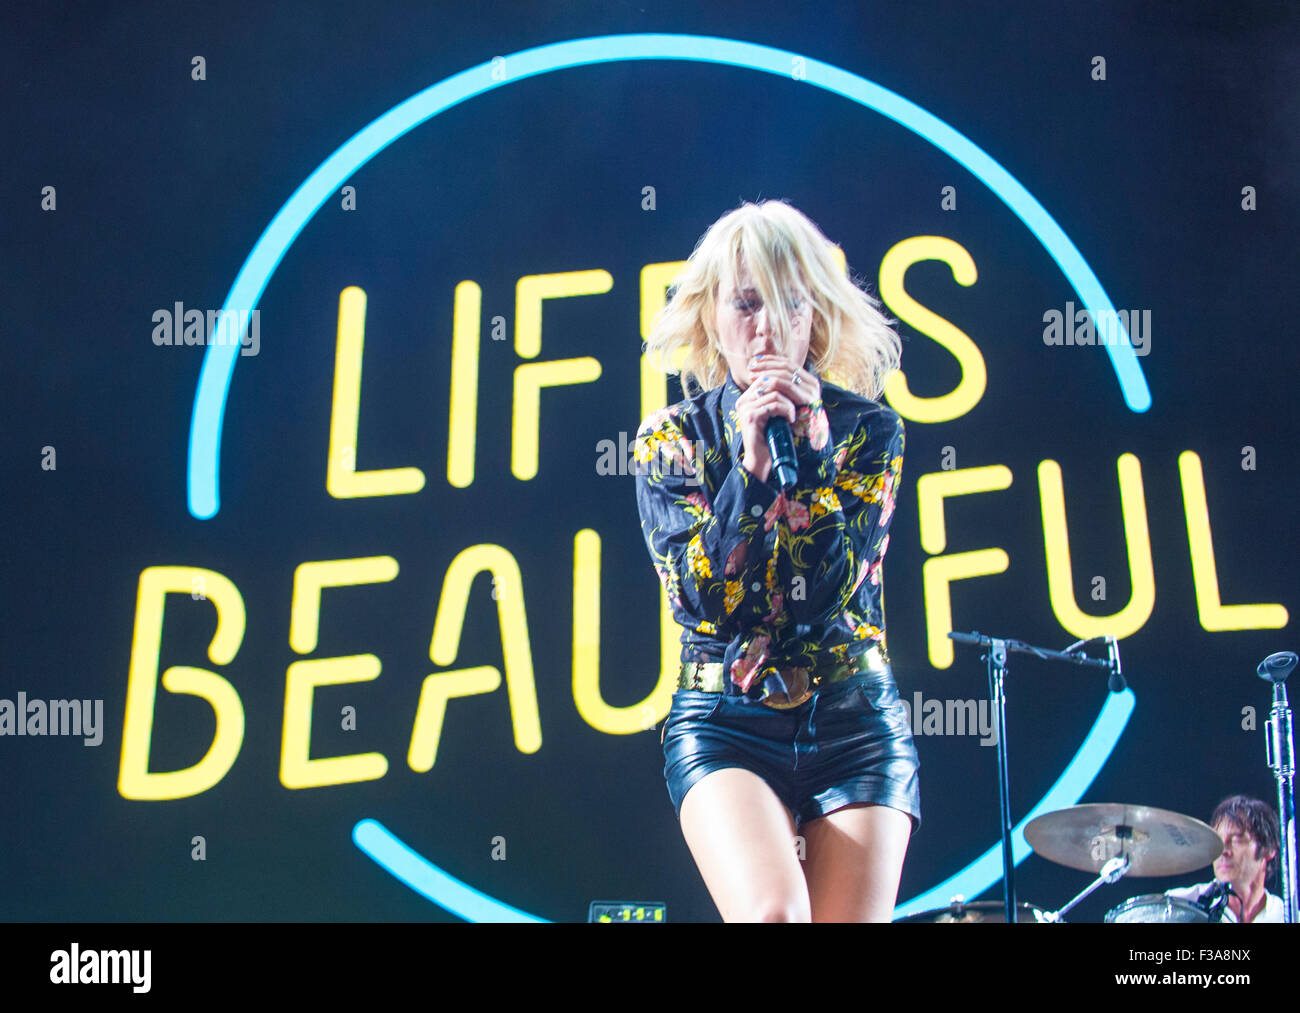 Musician Emily Haines of Metric performs onstage at the 2015 Life Is Beautiful Festival in Las Vegas - Stock Image